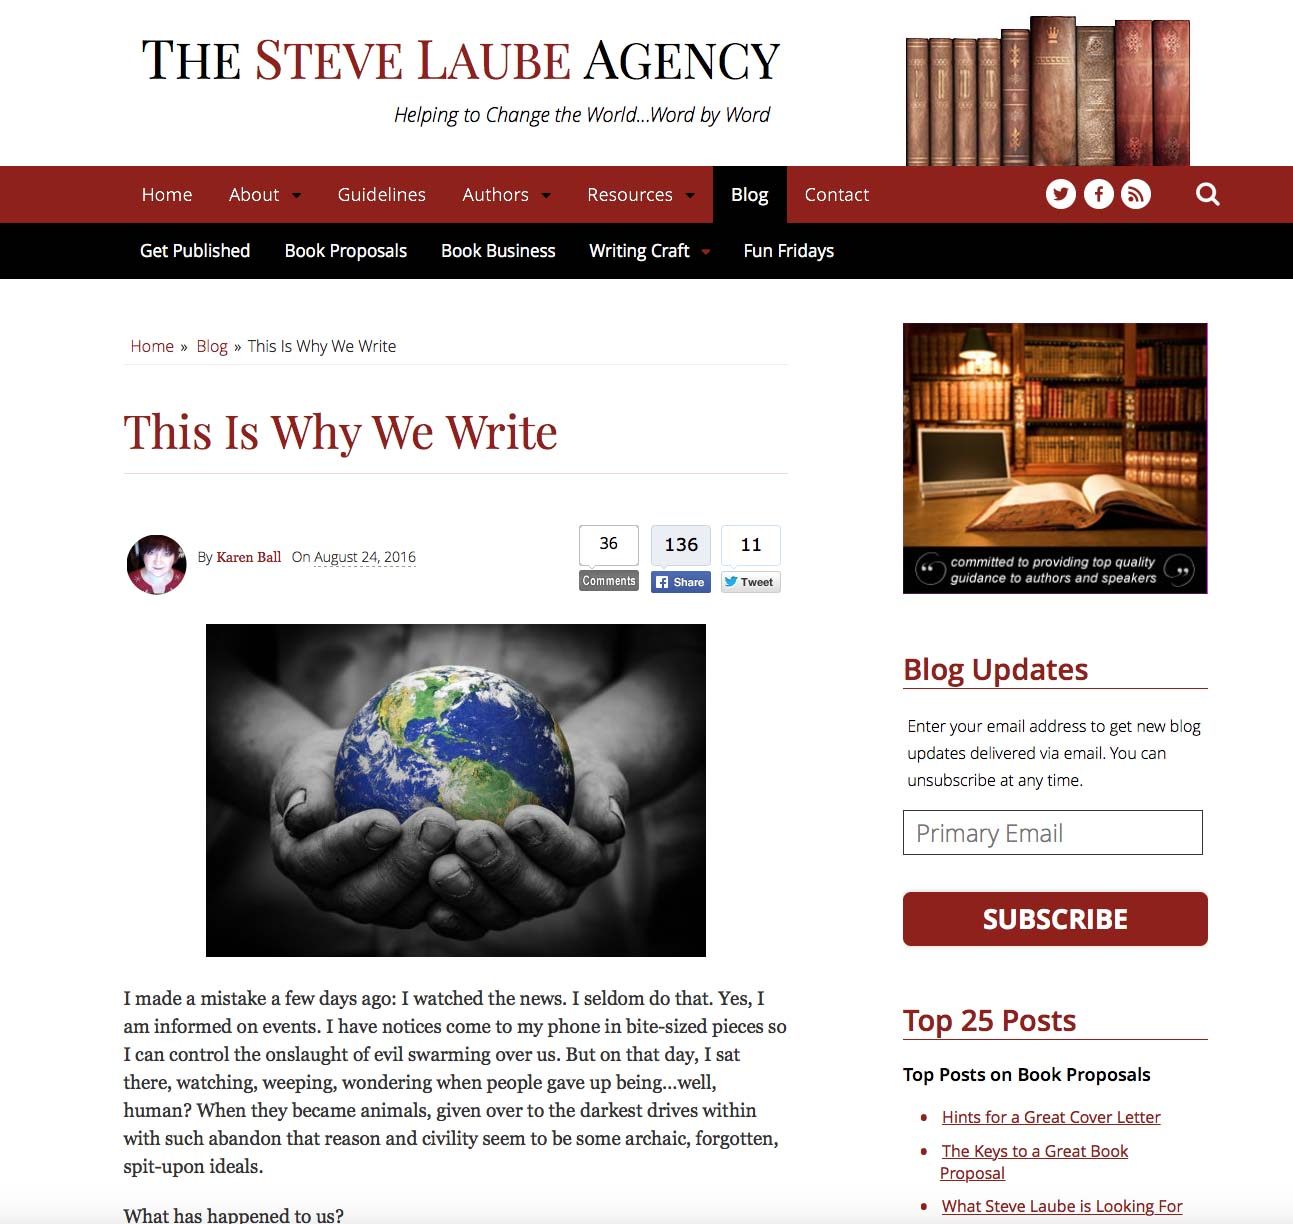 Come visit me at the Steve Laube Agency blog and at www.writefromthedeep.com!